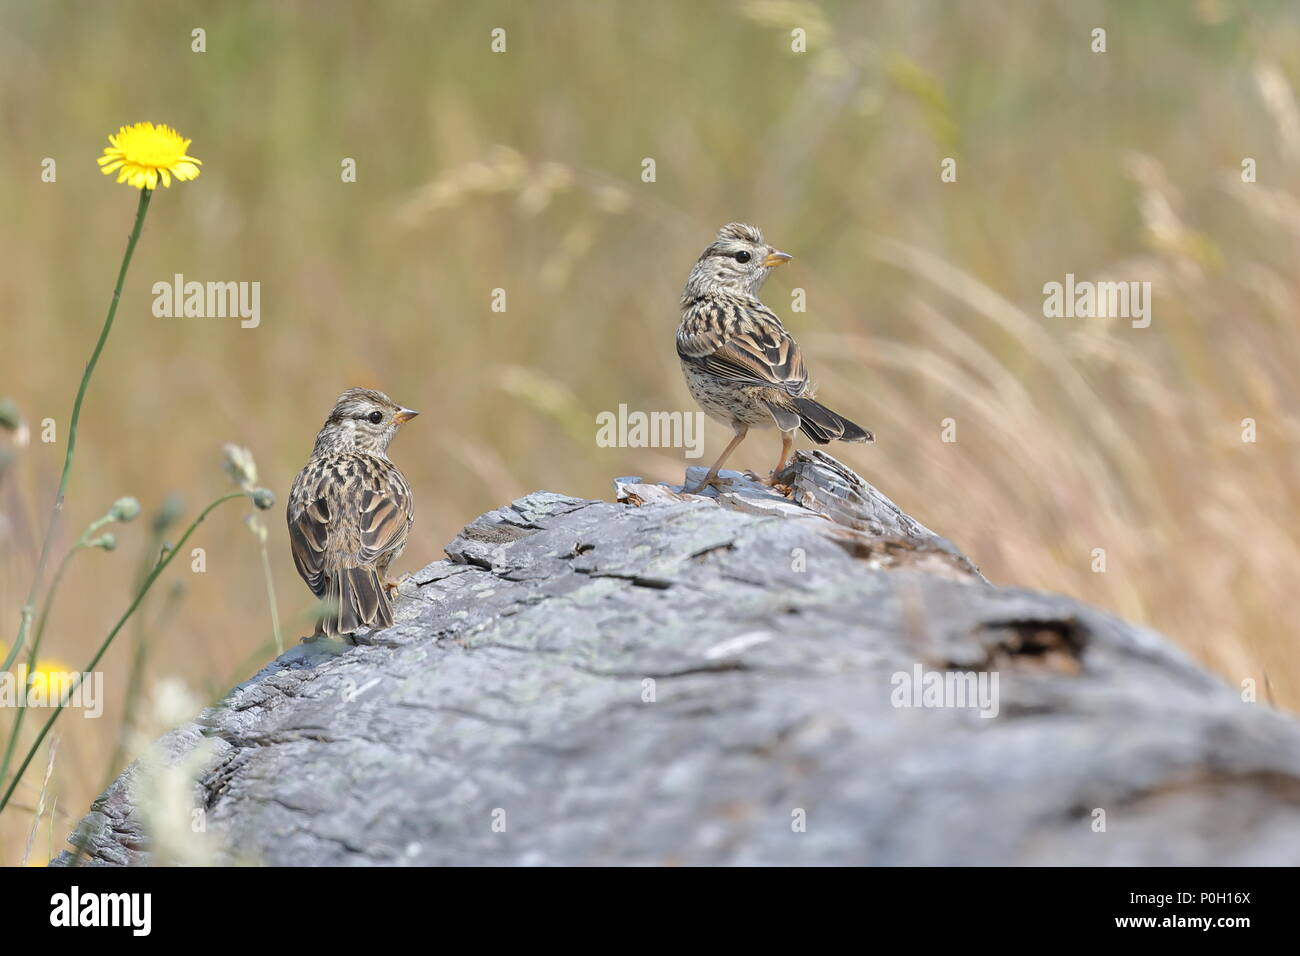 White-crowned Sparrow chicks - Stock Image